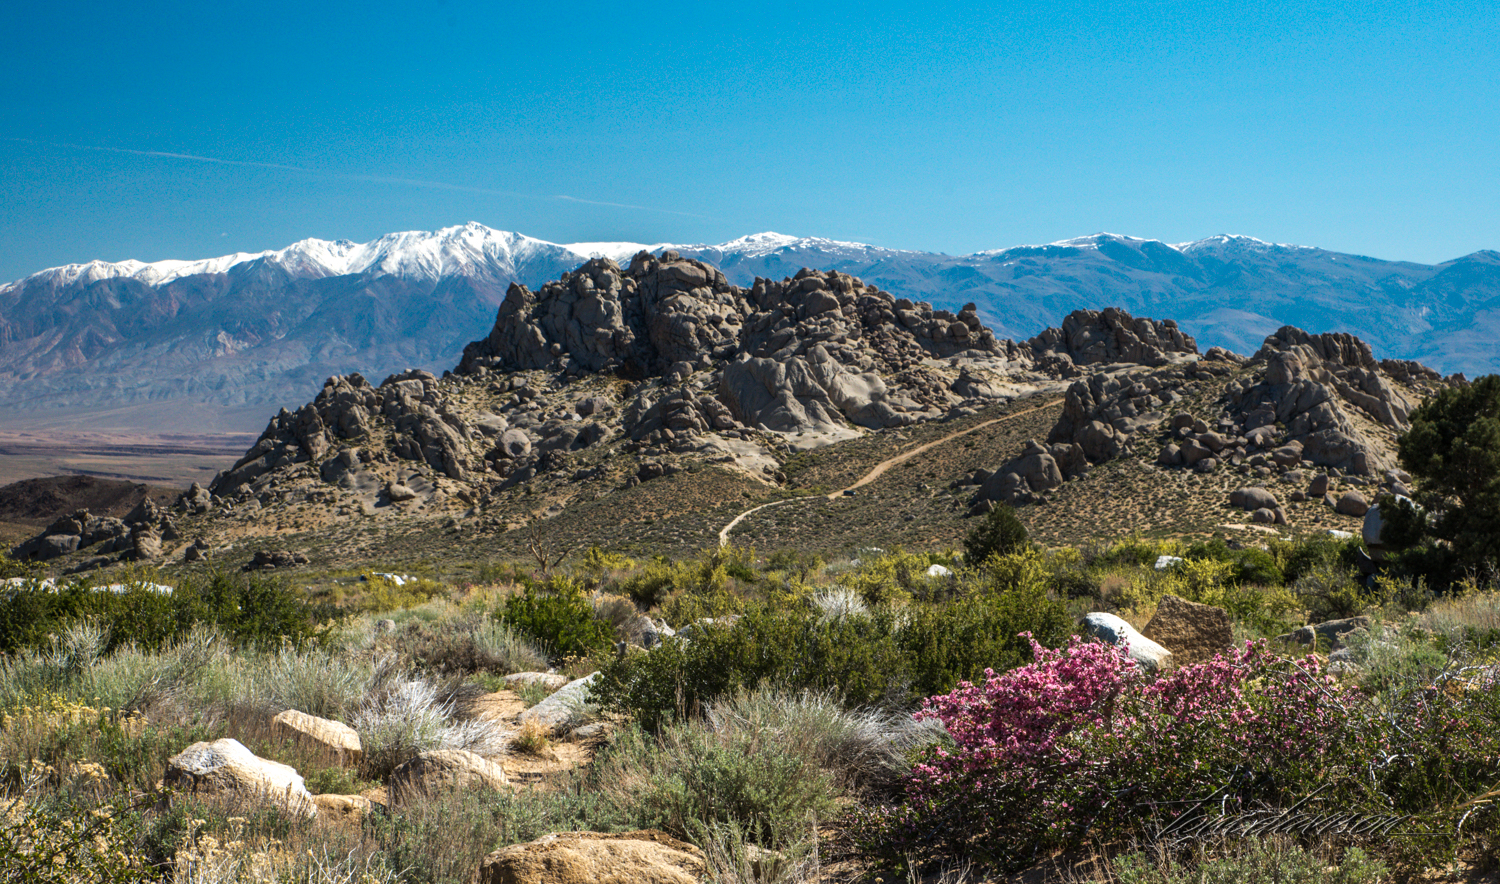 Buttermilk-13.jpg